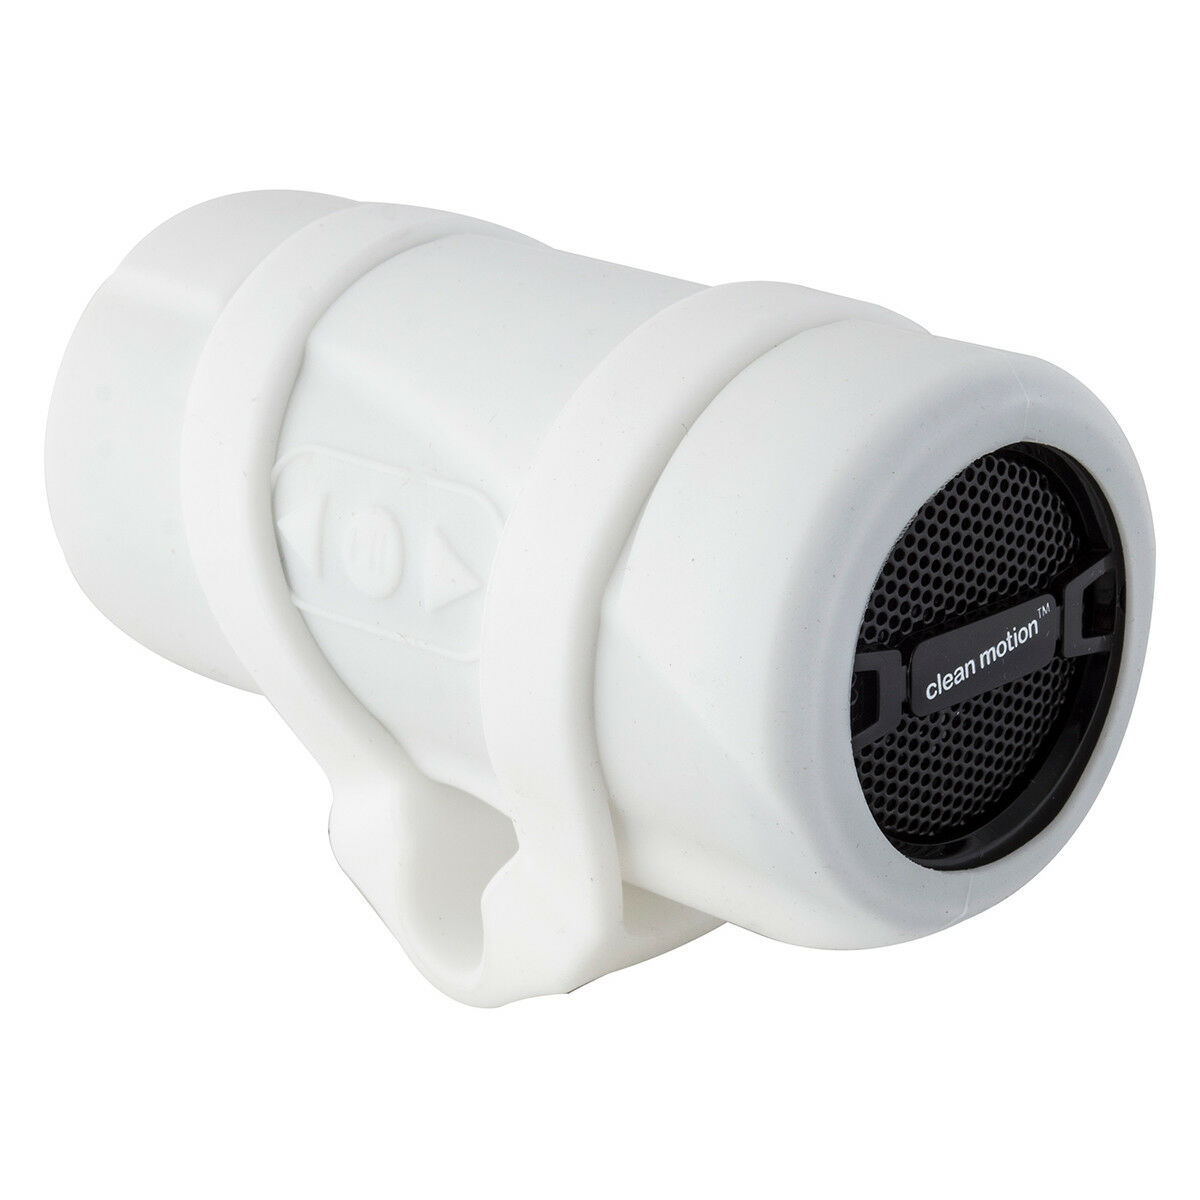 CLEAN MOTION SONICA BICYCLE HANDLEBAR MOUNT WHITE blueETOOTH SPEAKER